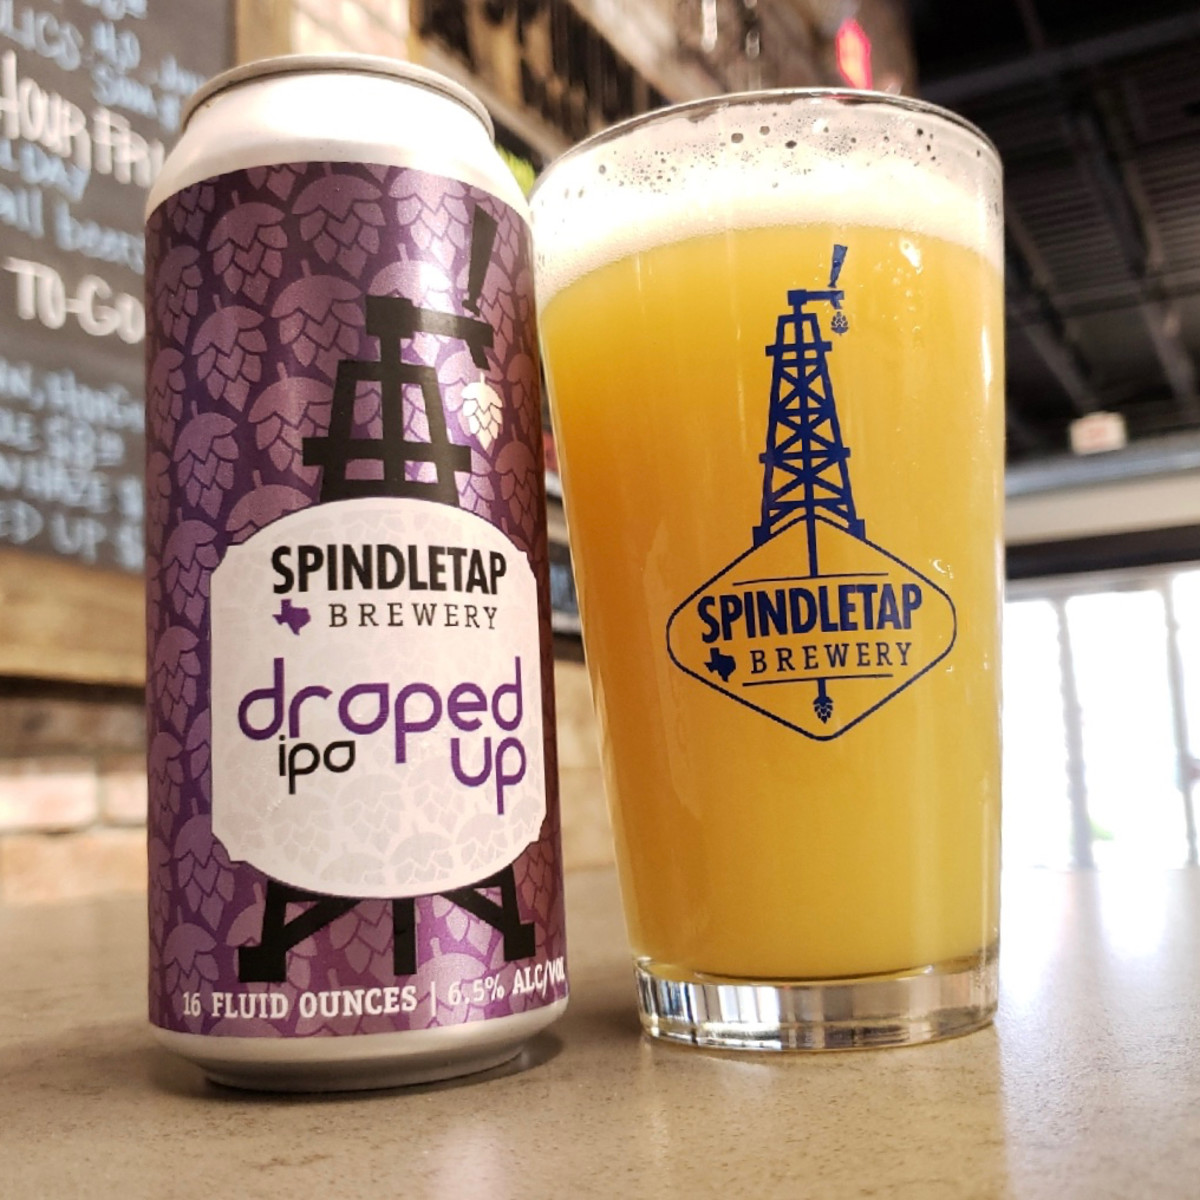 Spindletap Brewing Draped Up